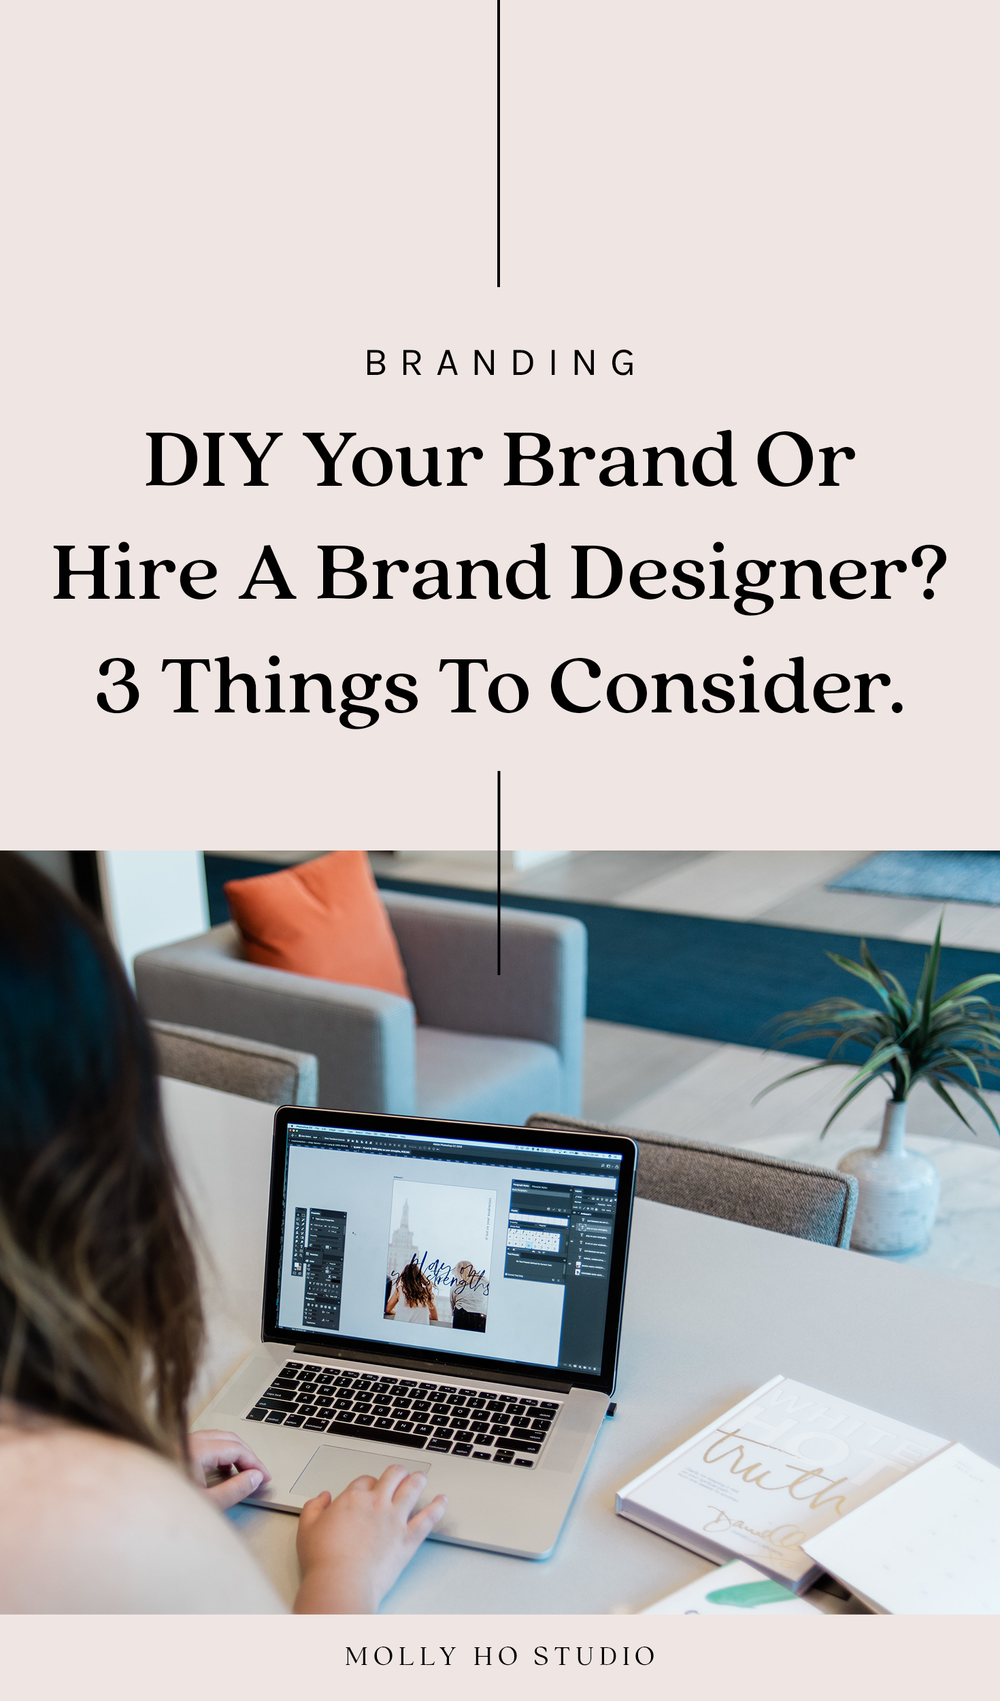 Should You DIY Your Brand or Hire A Brand Designer? | How To Find A Brand and Graphic Designer for Your Business |Branding Design Identity | Small Business Advice | Personal Branding for Creative Female Entrepreneurs | Digital Marketing and Social Media | Finding Your Ideal Client Avatar and Target Market | Creative Entrepreneurship | Branding and Business Tips | Molly Ho Studio